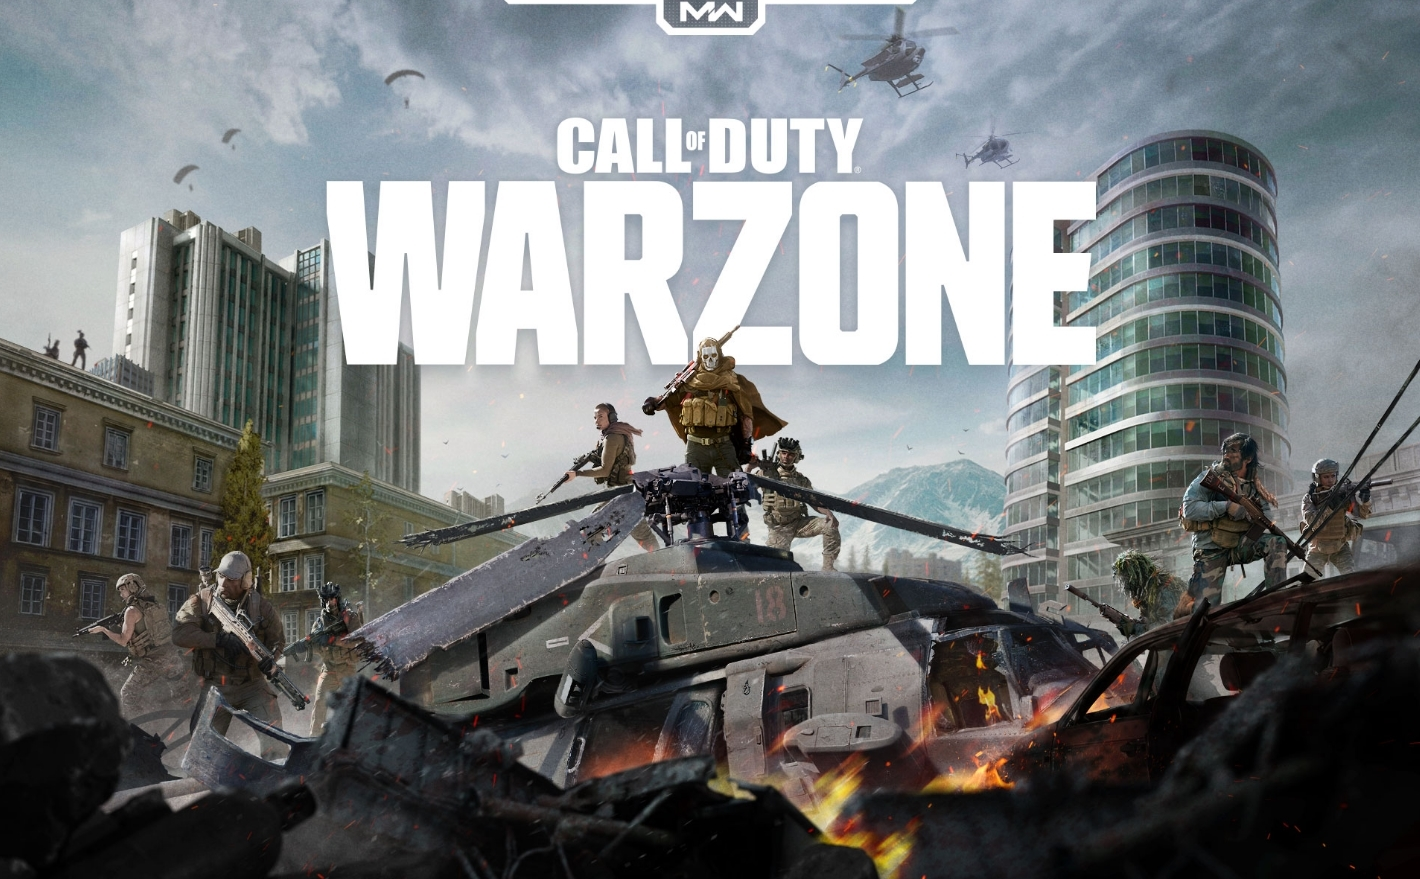 Best places to get cash in Call of Duty: Warzone